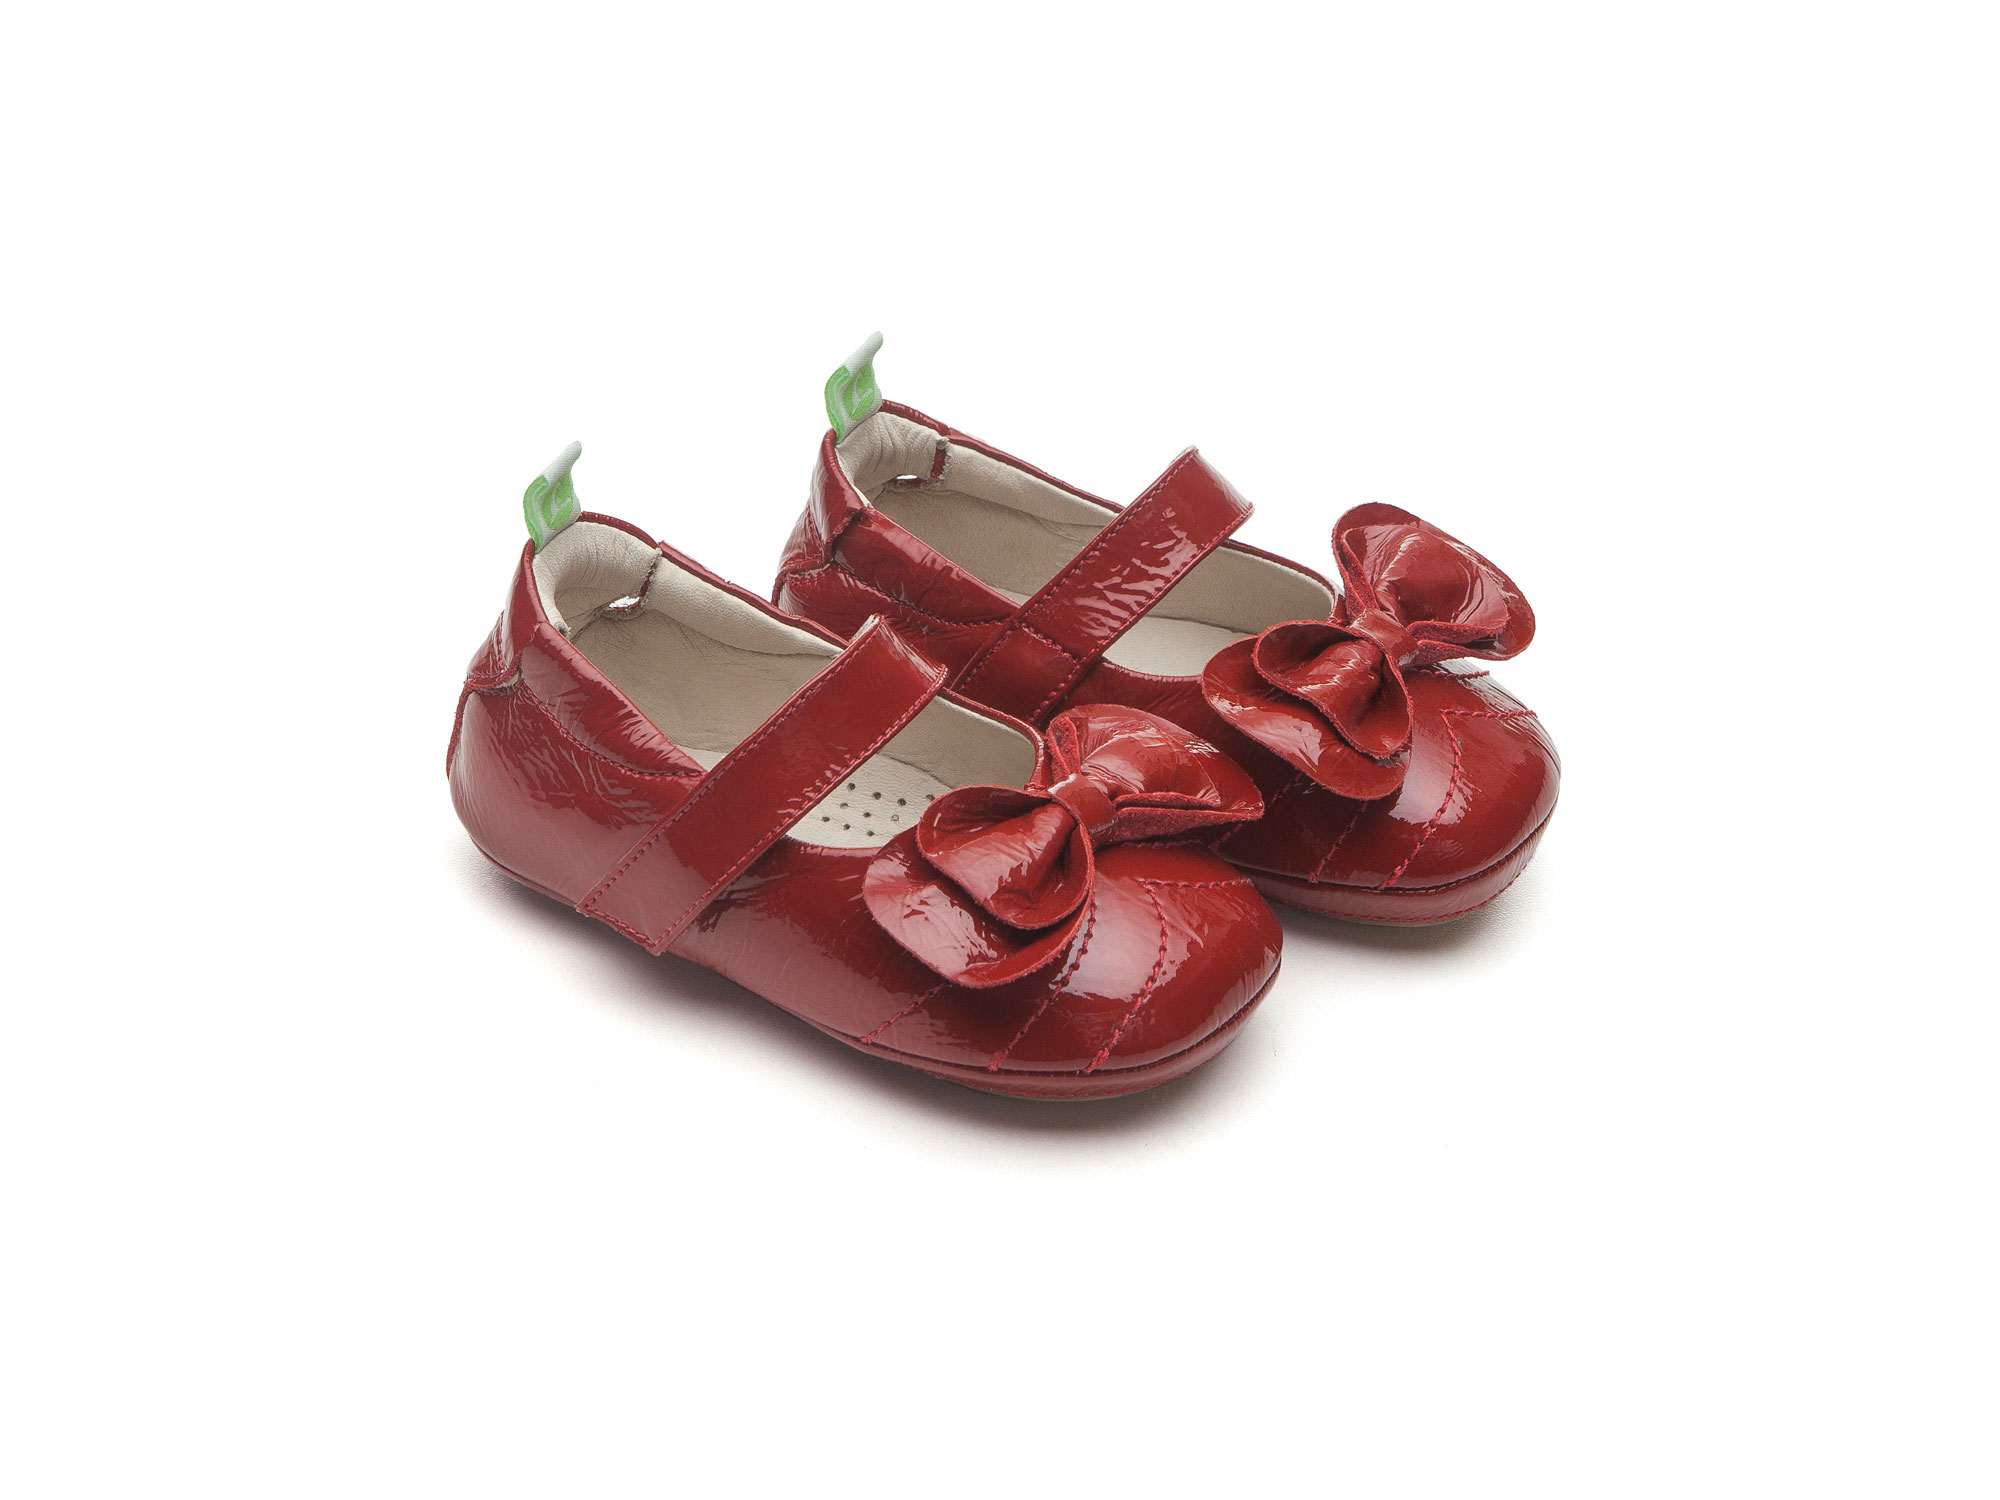 Mary Jane Fancy Patent Red Baby for ages 0 to 2 years - 0